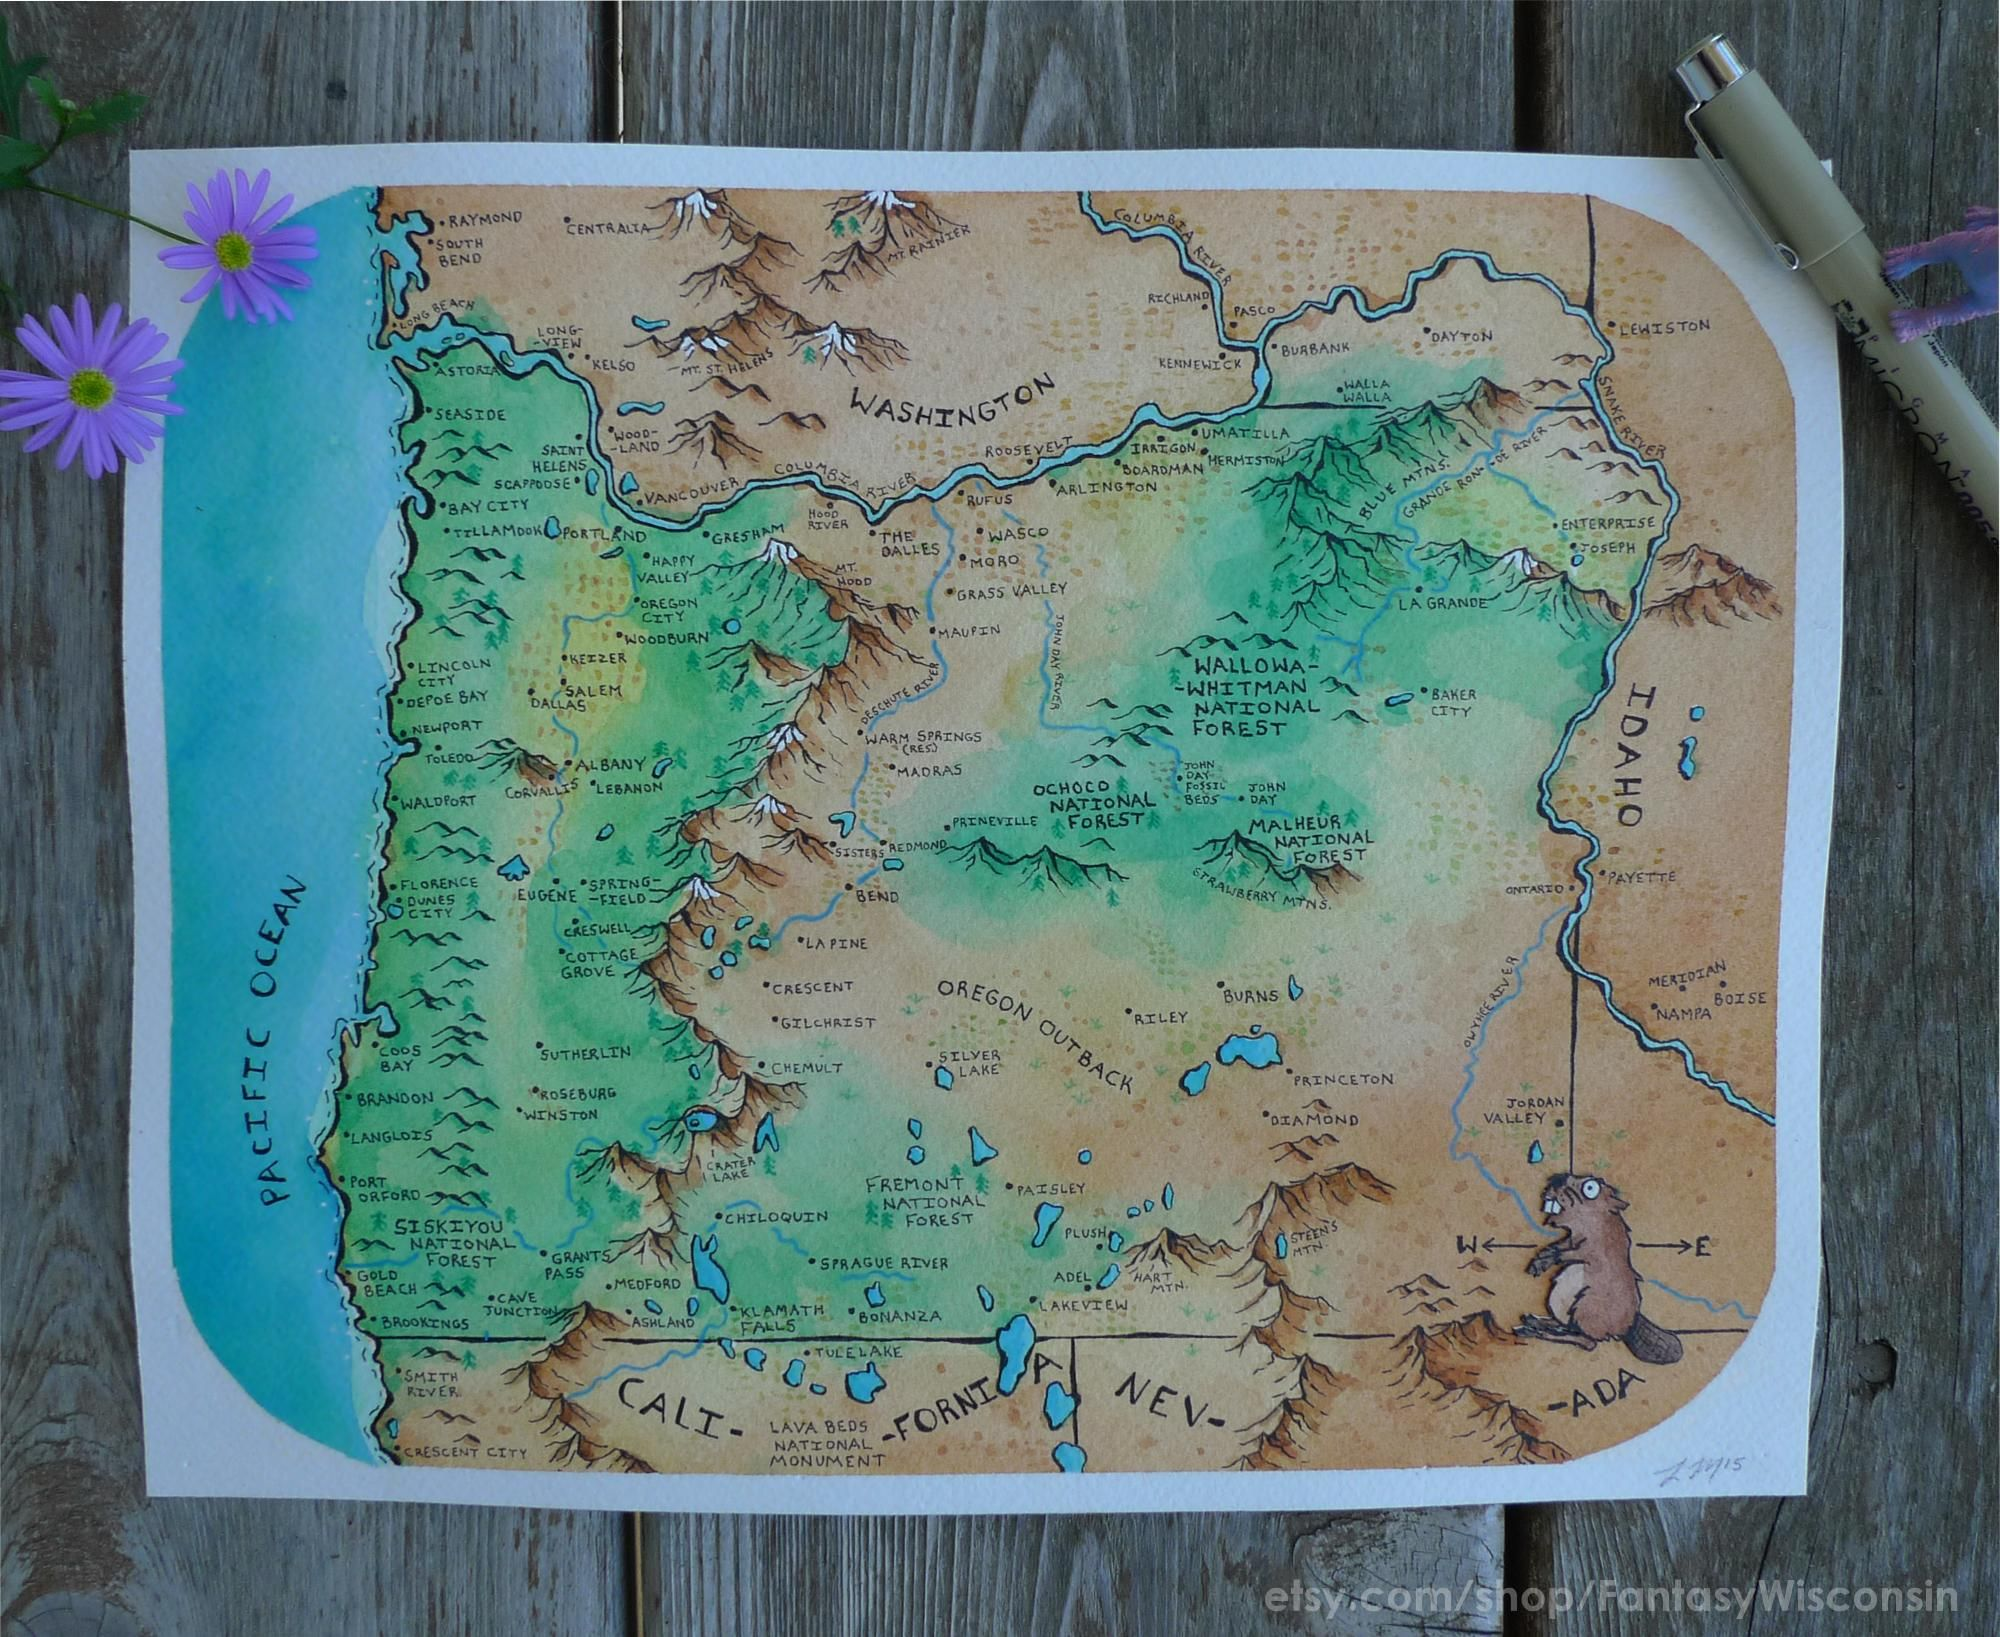 Fantasy style map of Oregon by Levi